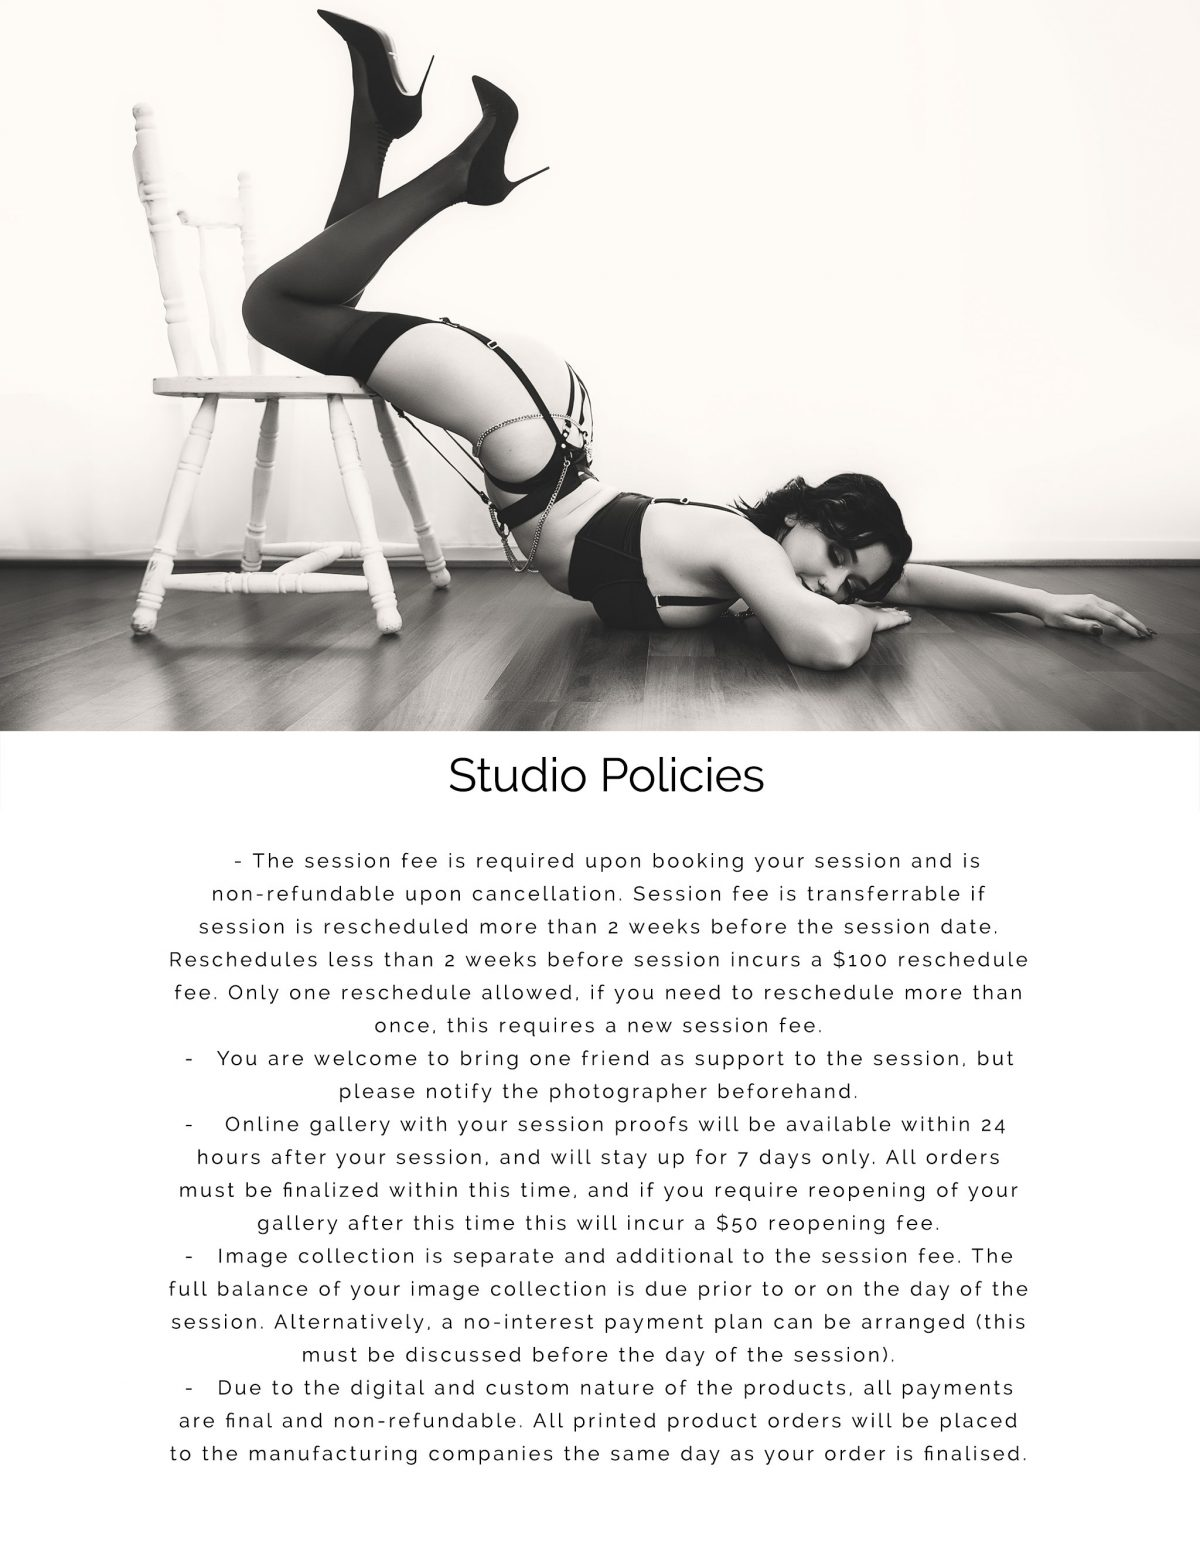 A4-22-POLICIES